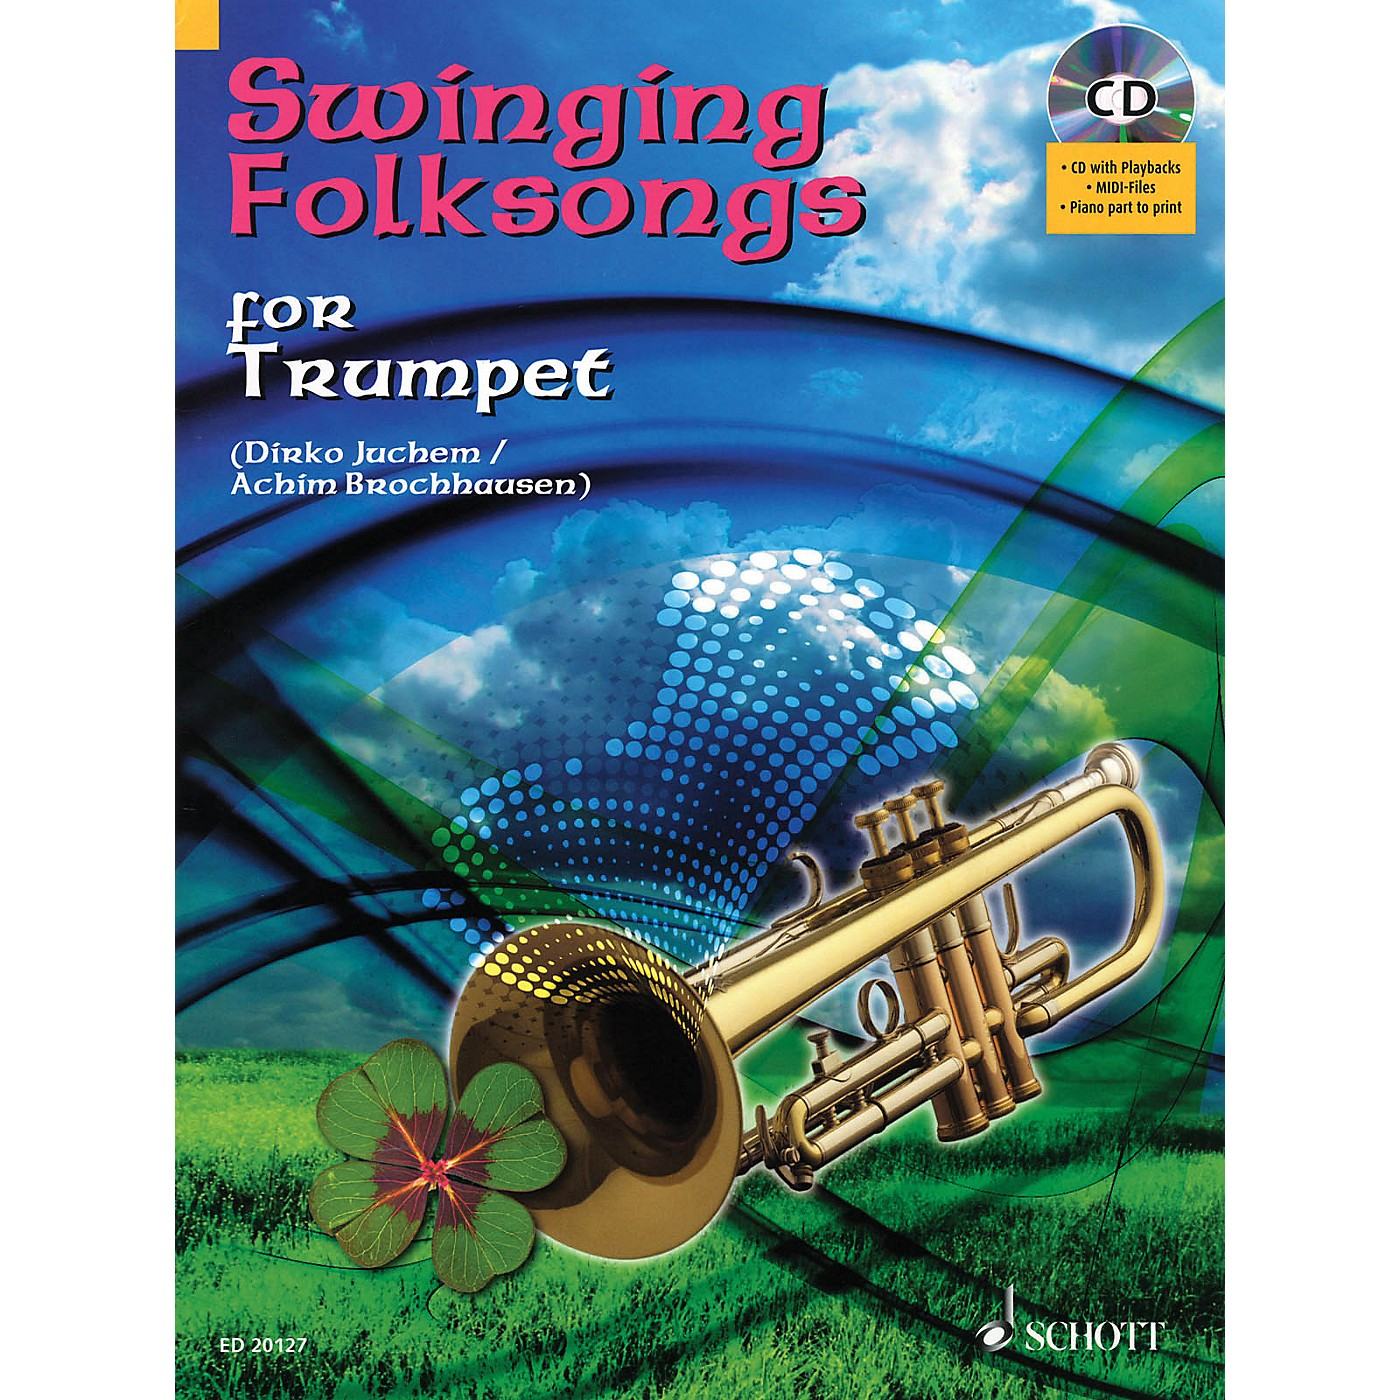 Hal Leonard Swinging Folksongs Play-along For Trumpet Bk/cd With Piano Parts To Print Brass Solo Series thumbnail